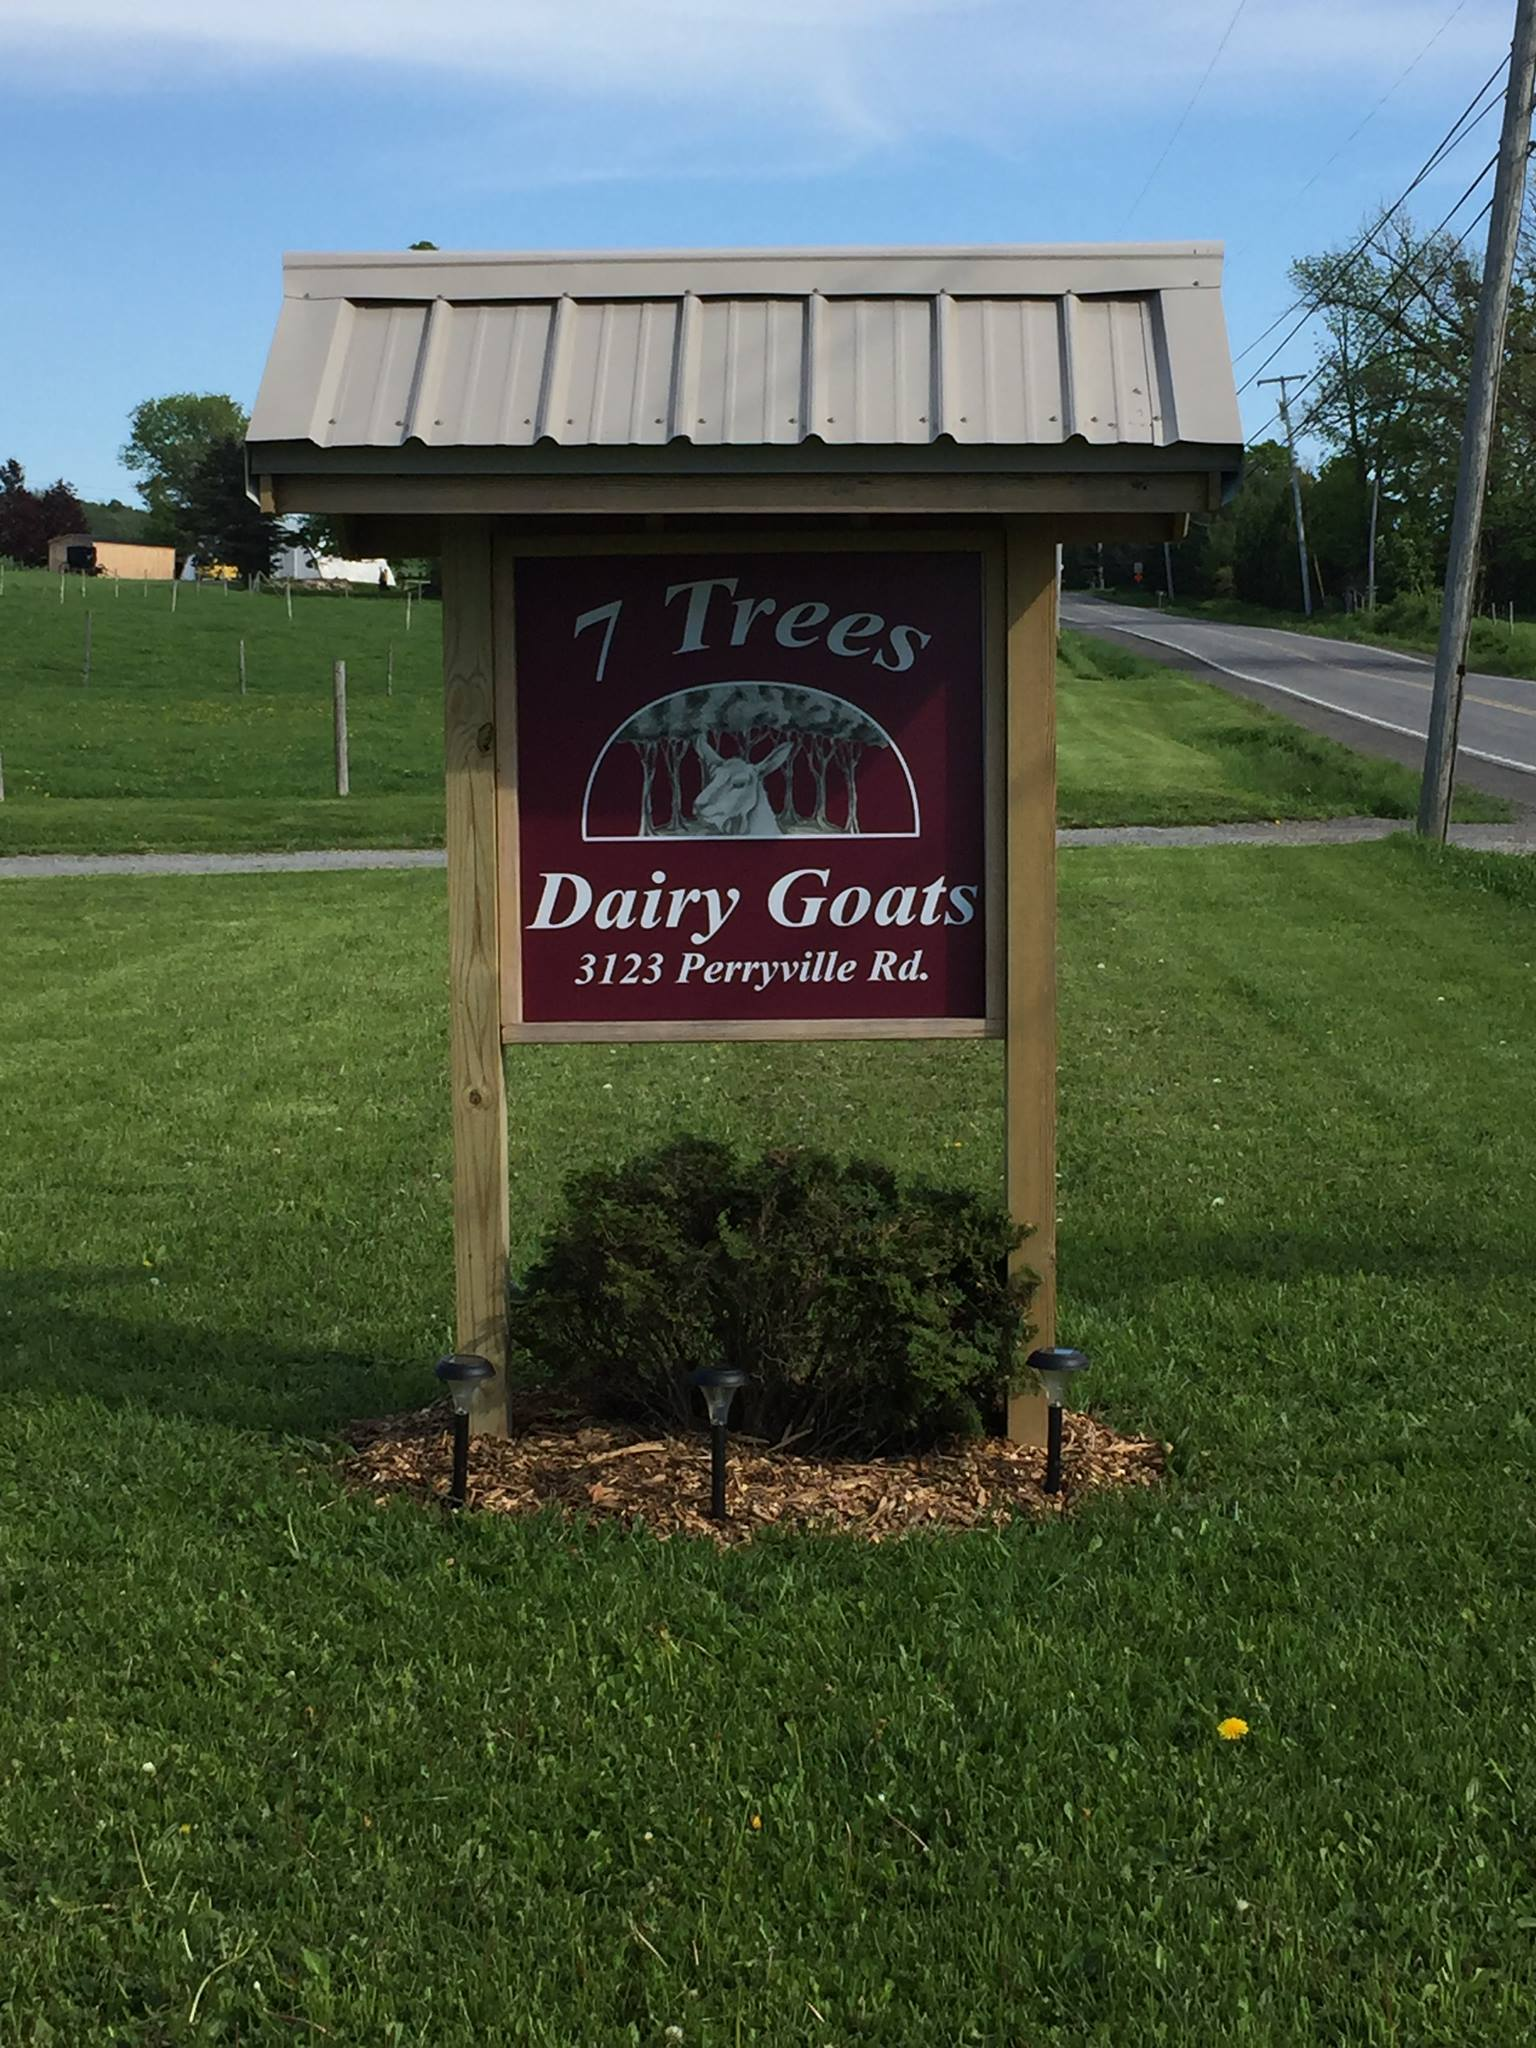 7 Trees Dairy Goats